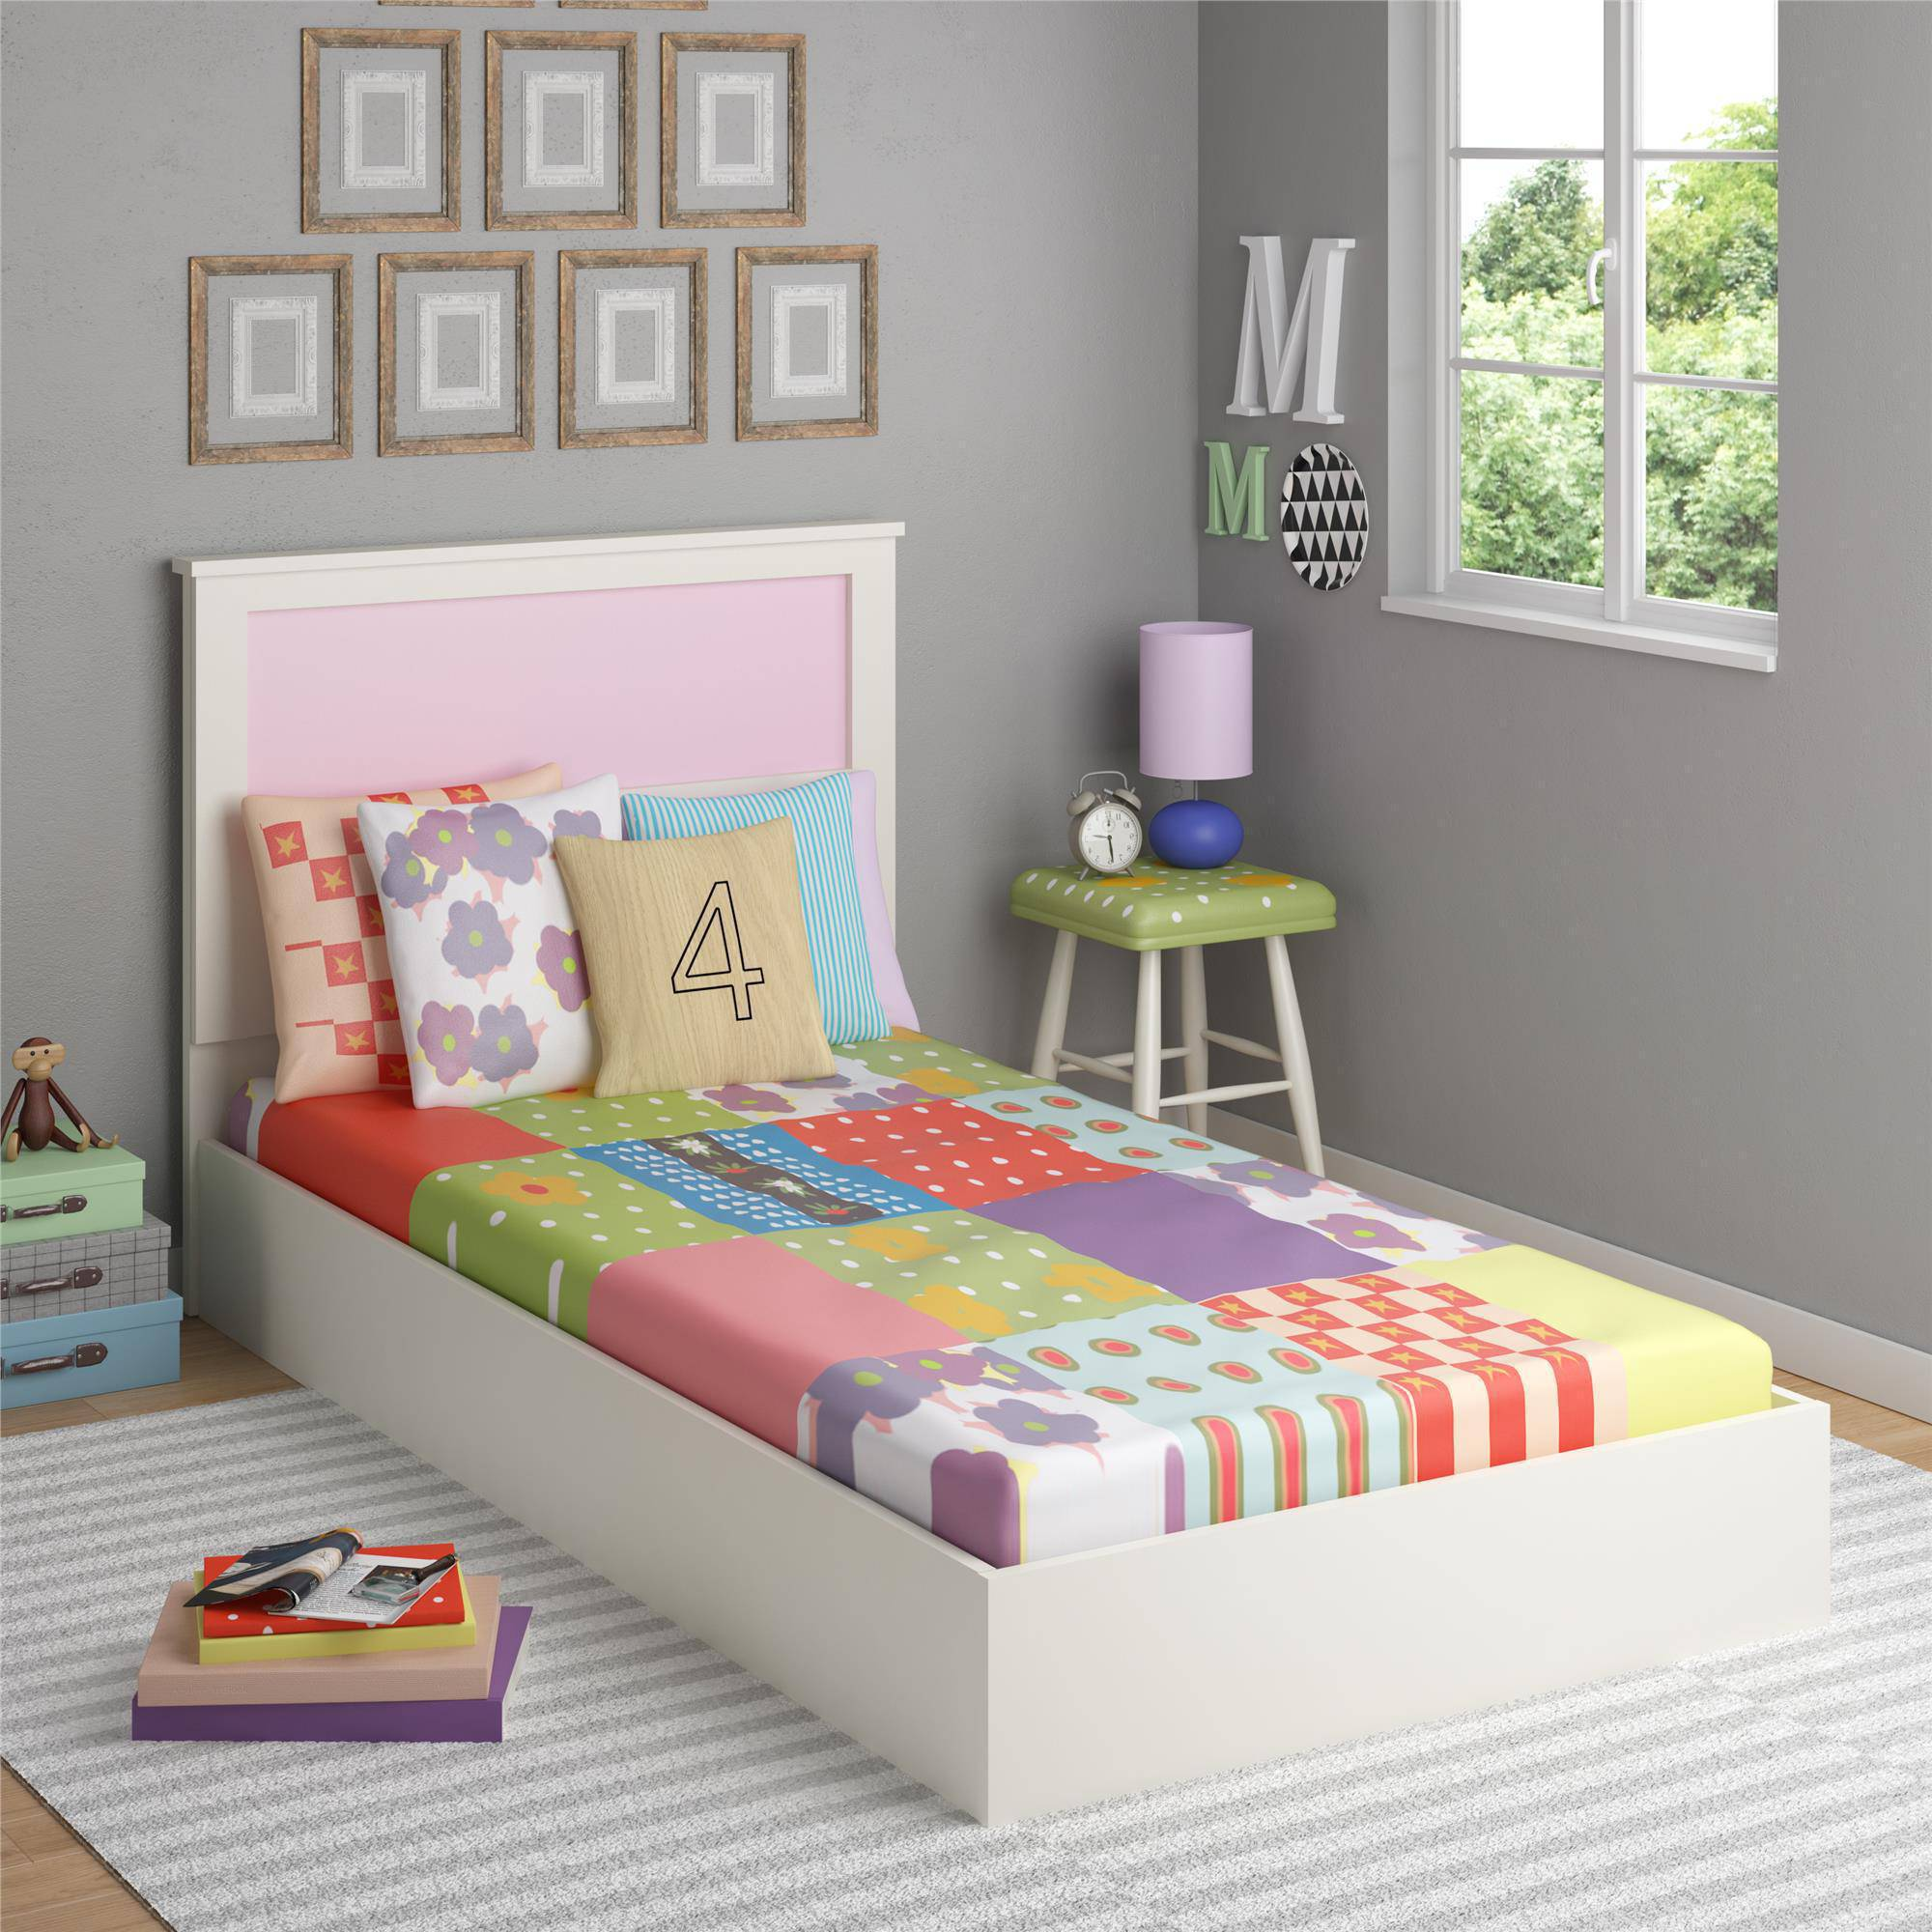 Things to consider while buying kids beds